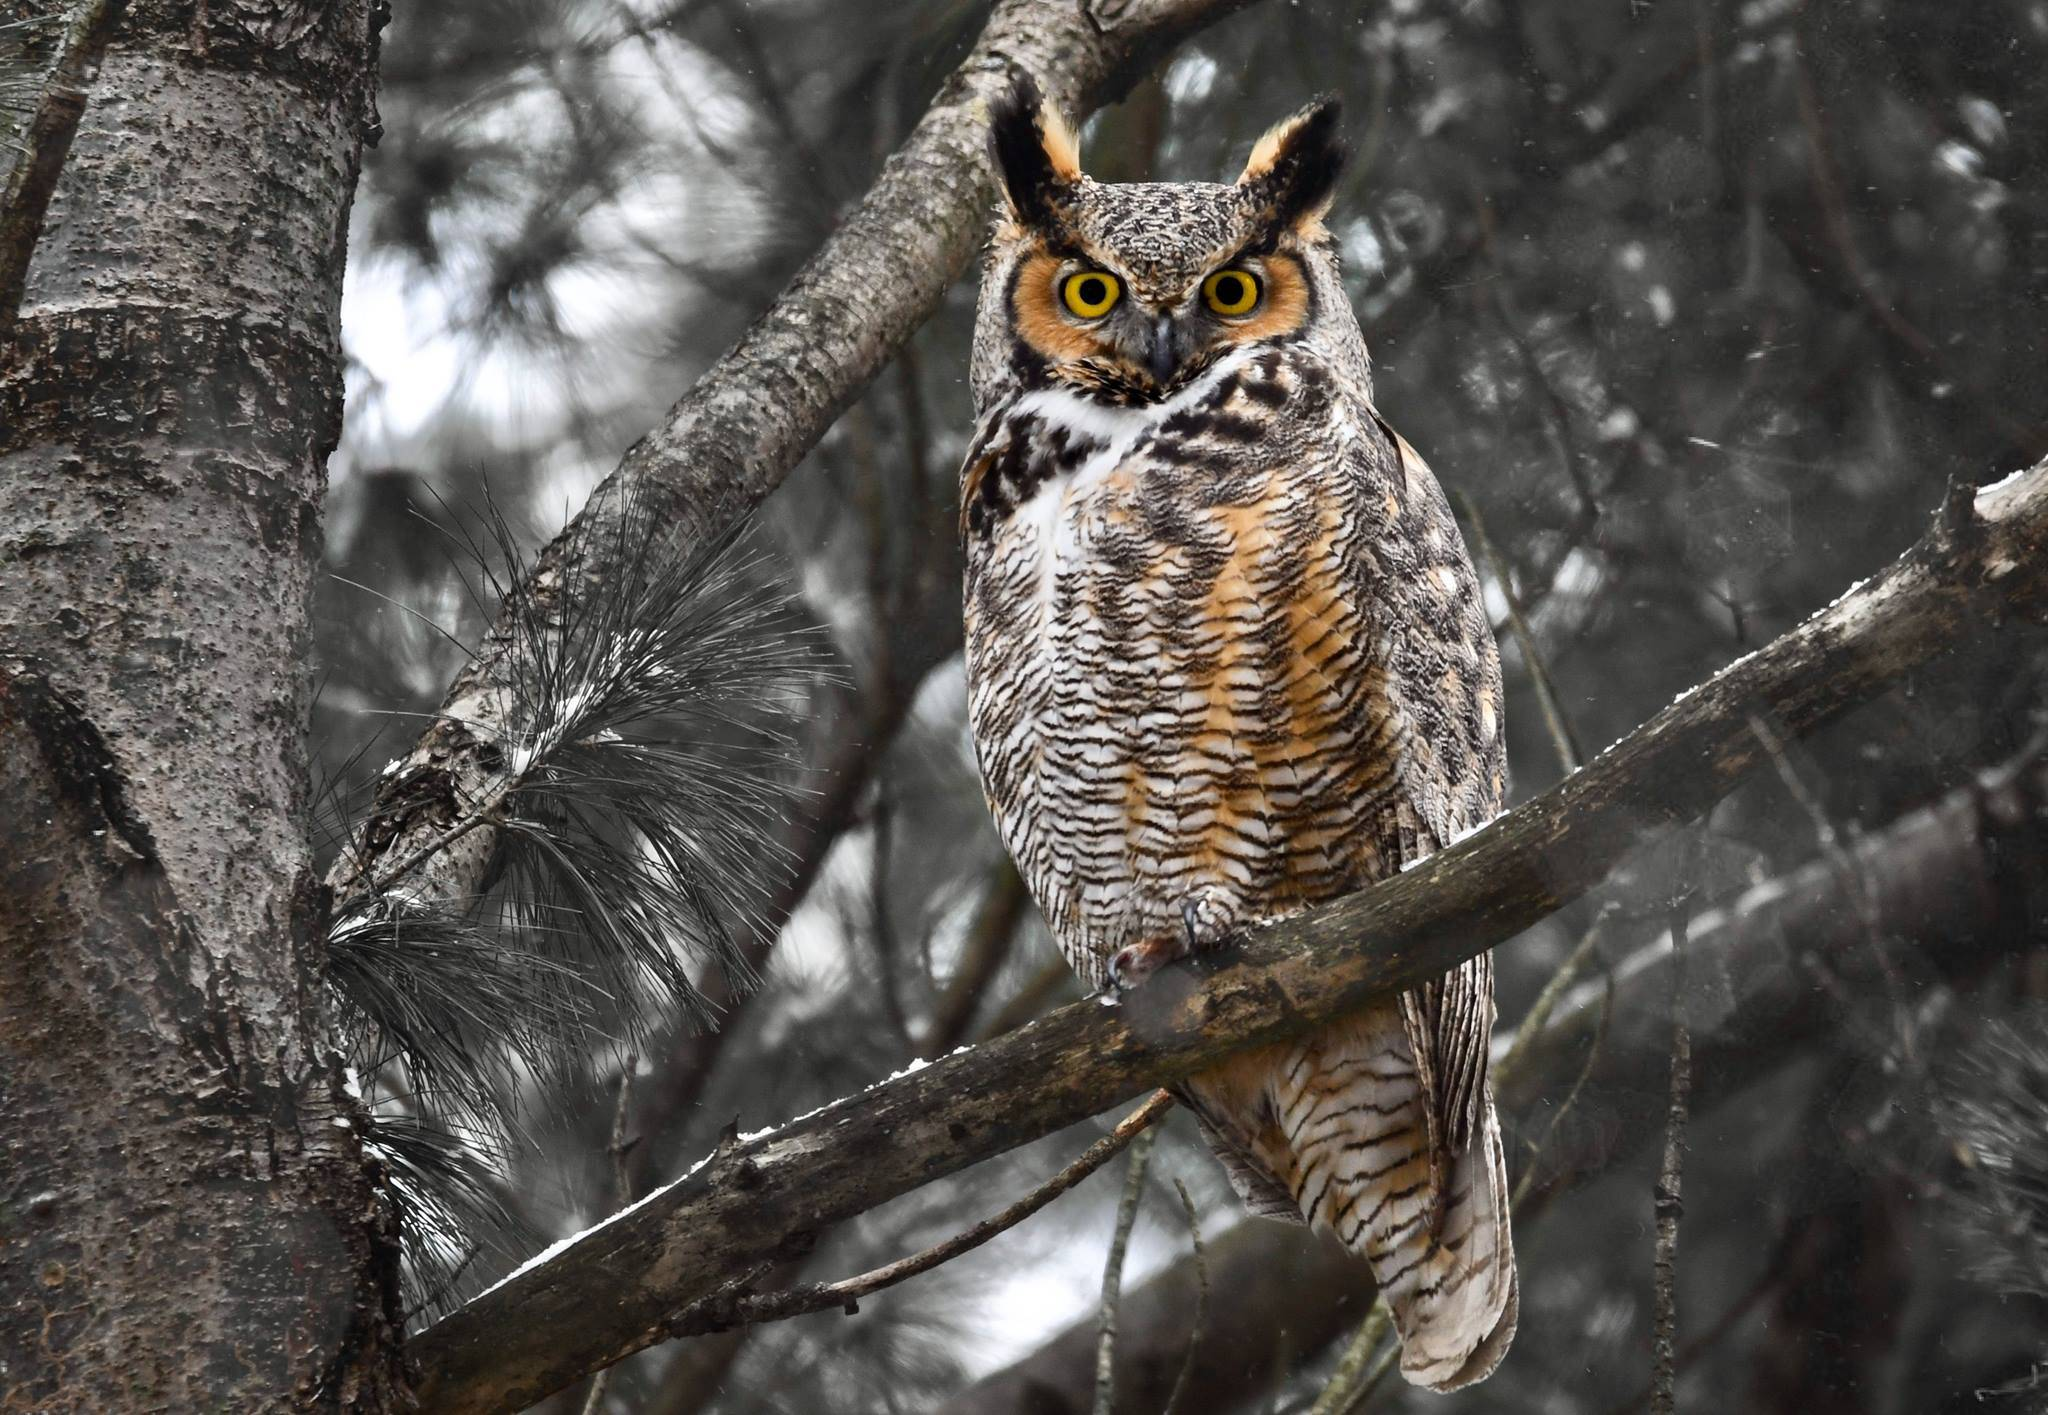 A Great horned owl looks out from a tree in McHenry.